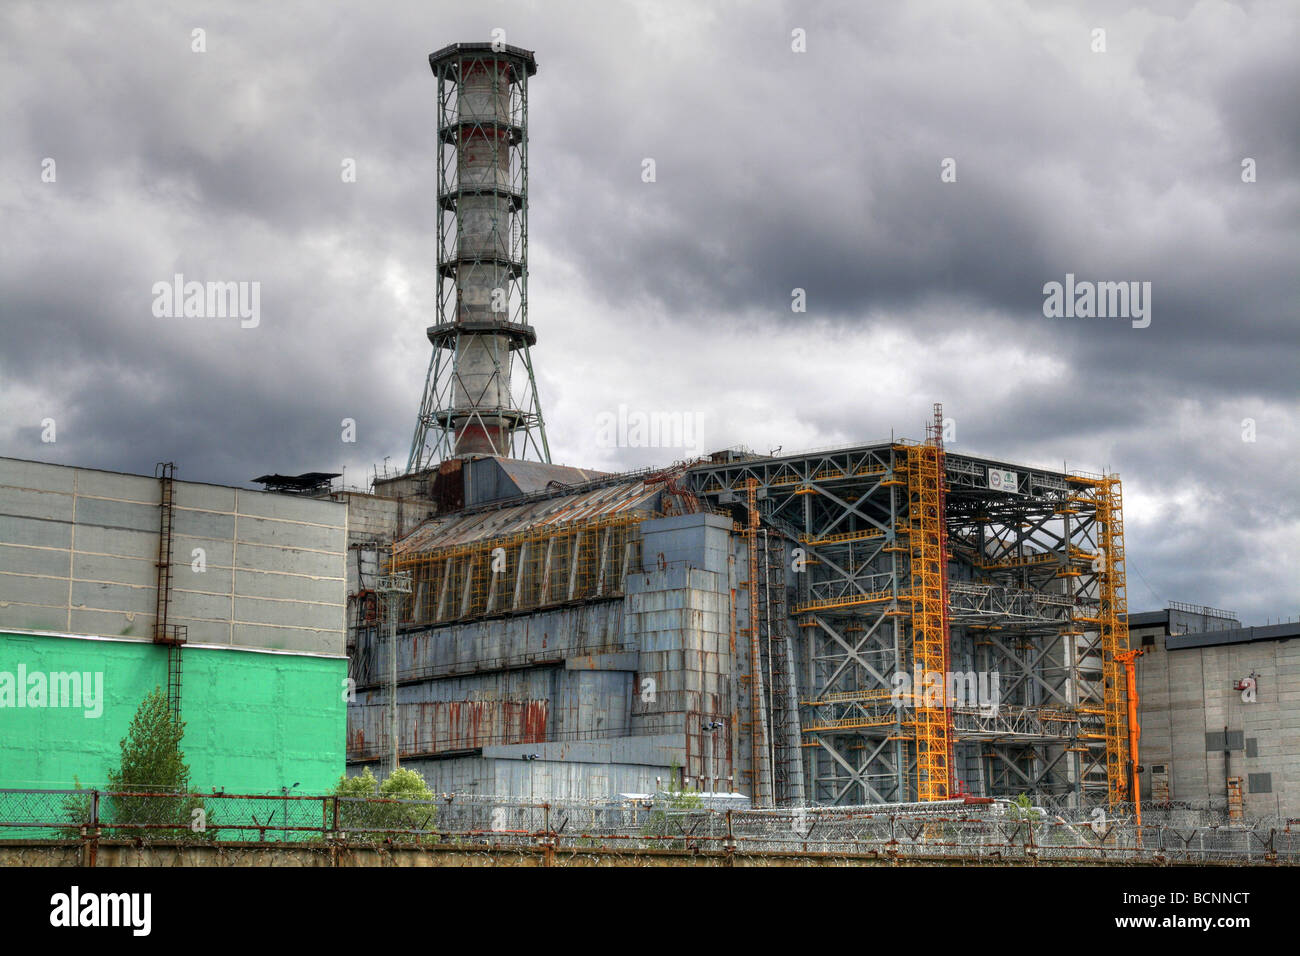 Nuclear reactor in Chernobyl. Chernobyl sarcophagus. - Stock Image